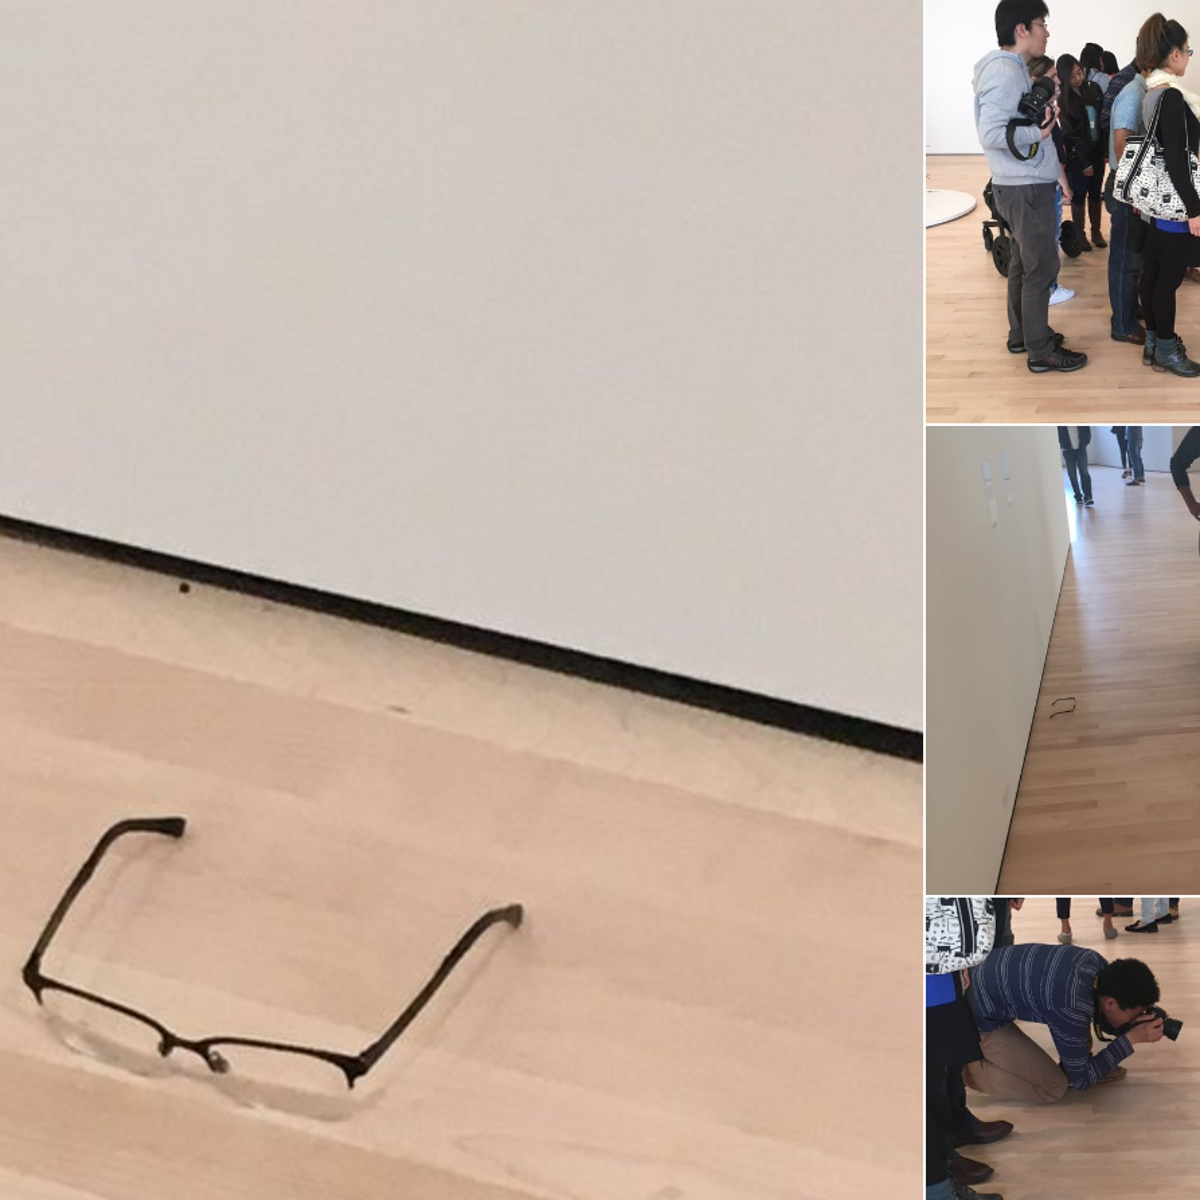 The 'glasses in the museum prank.'